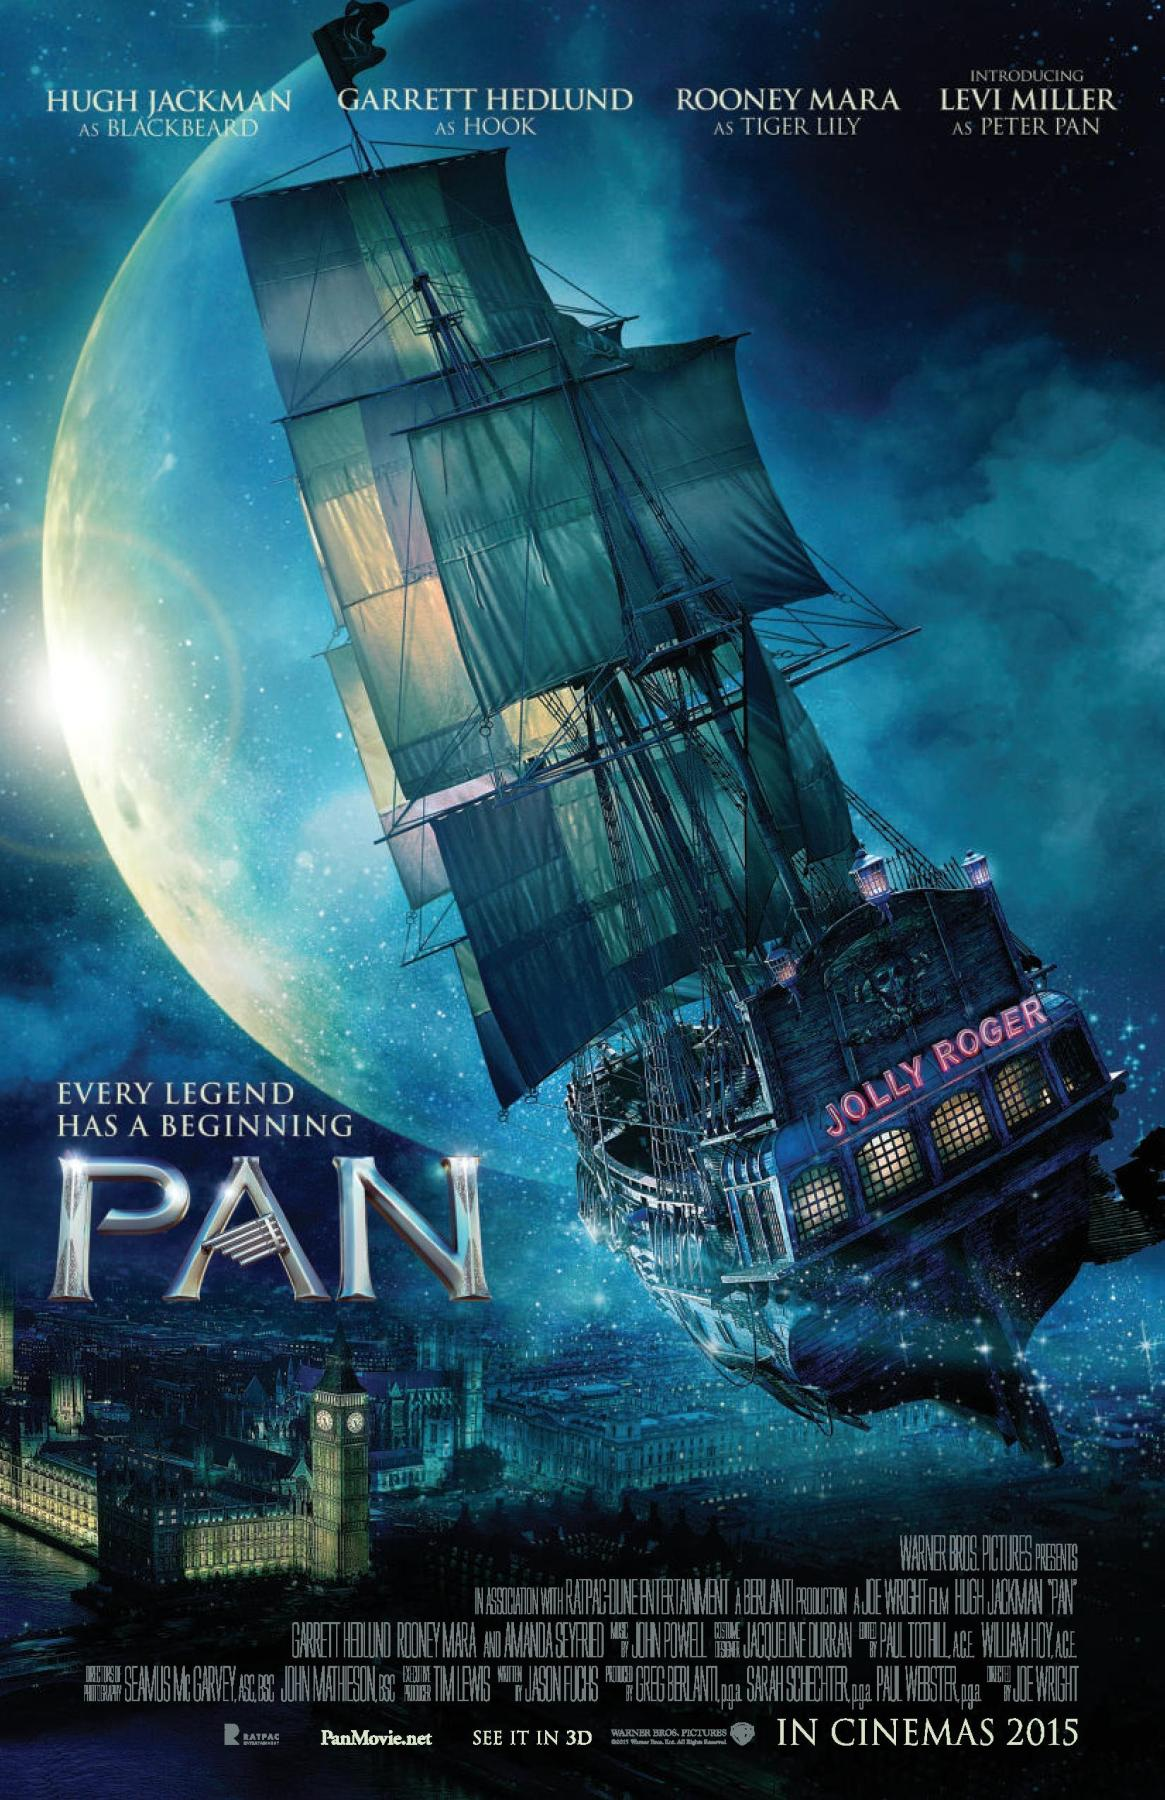 """Every legend has a beginning"" Free printable Pan activity book to celebrate the new movie Pan"